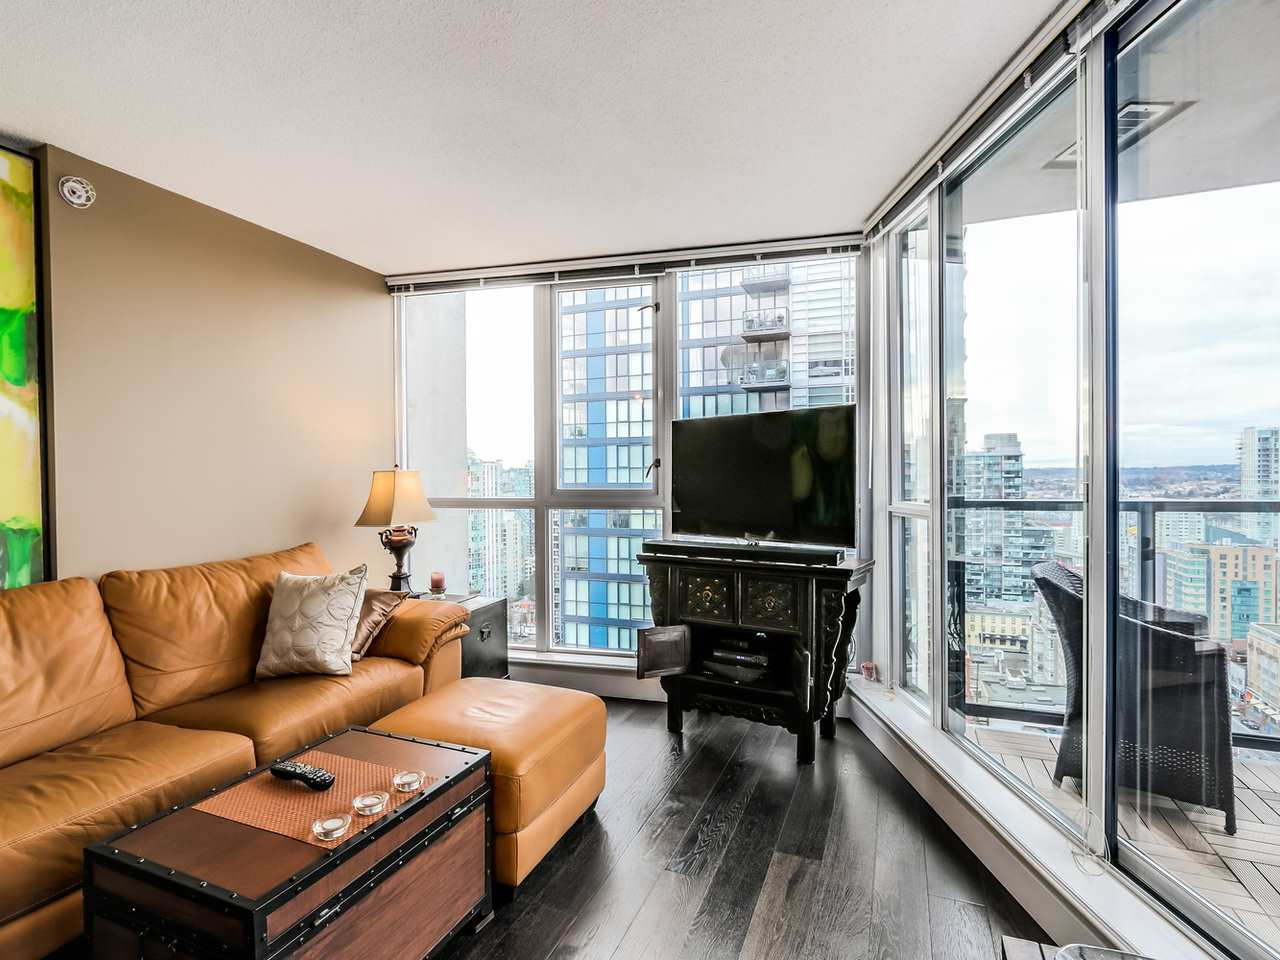 Photo 3: 2308 1155 SEYMOUR STREET in Vancouver: Downtown VW Condo for sale (Vancouver West)  : MLS® # R2026499